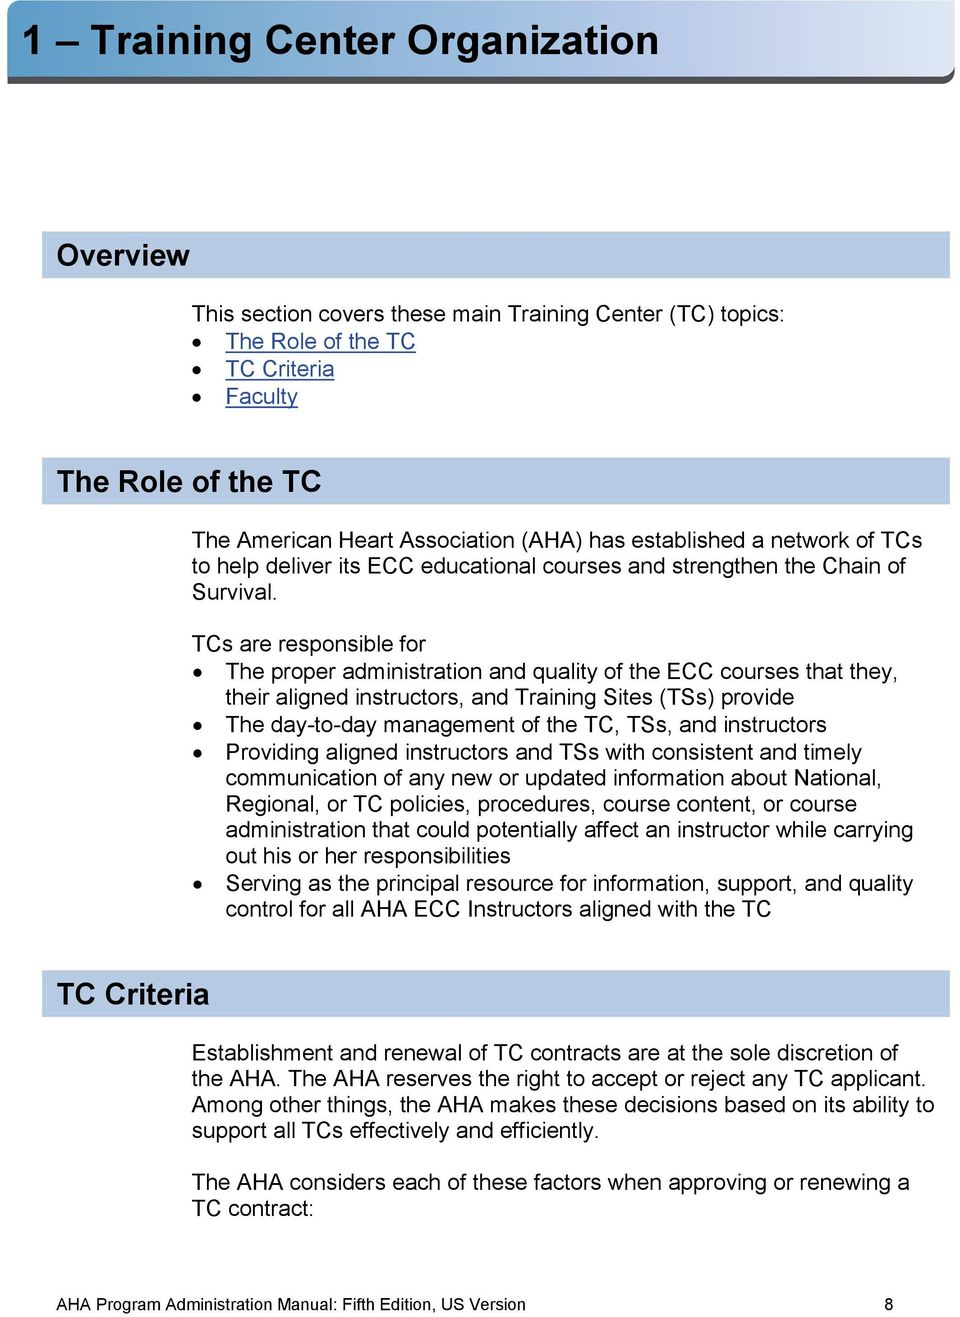 TCs are responsible for The proper administration and quality of the ECC courses that they, their aligned instructors, and Training Sites (TSs) provide The day-to-day management of the TC, TSs, and